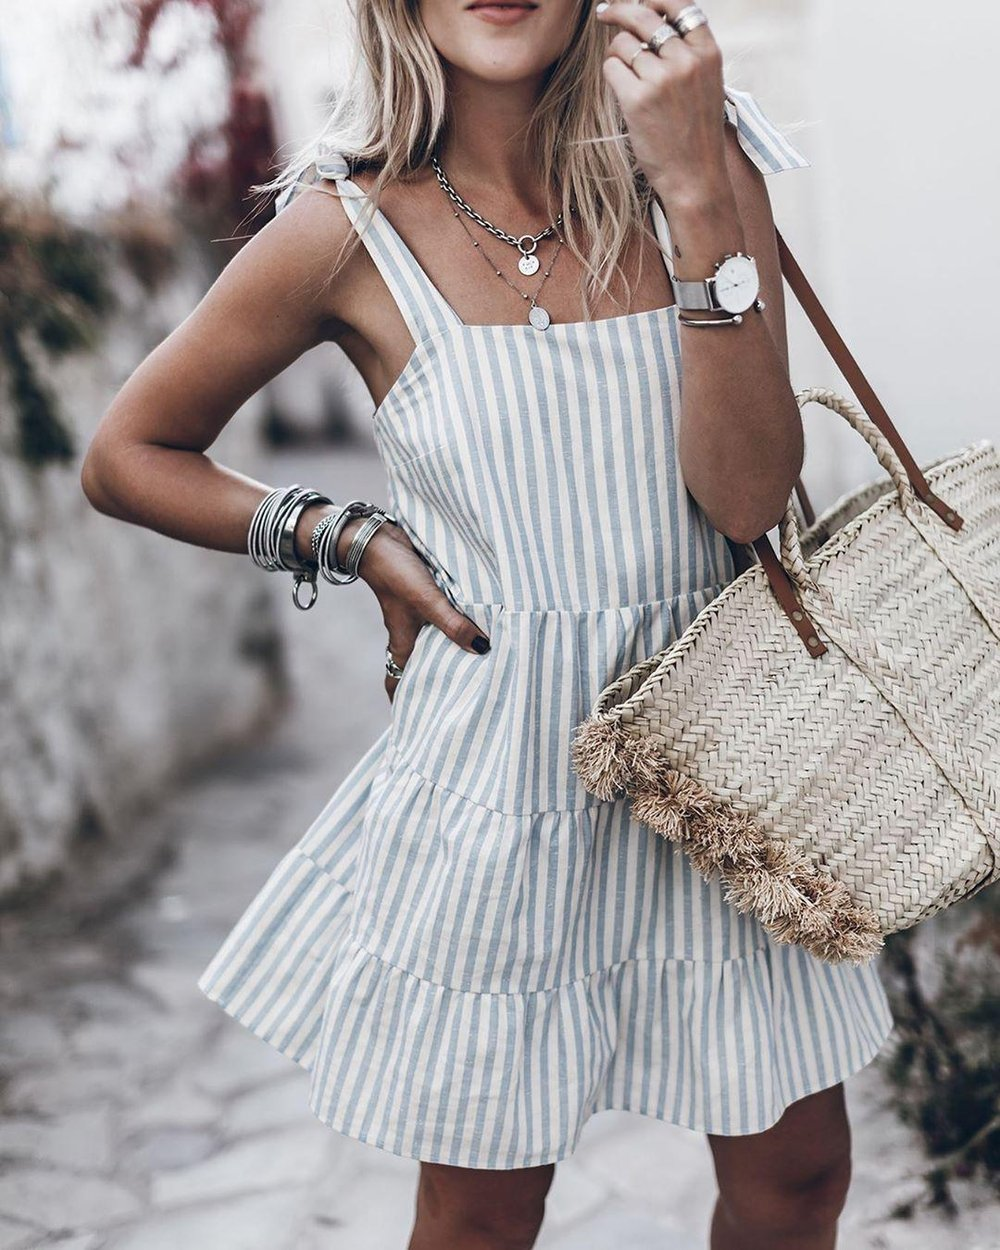 Ficcia Grey And White Striped Straps Mini Dress